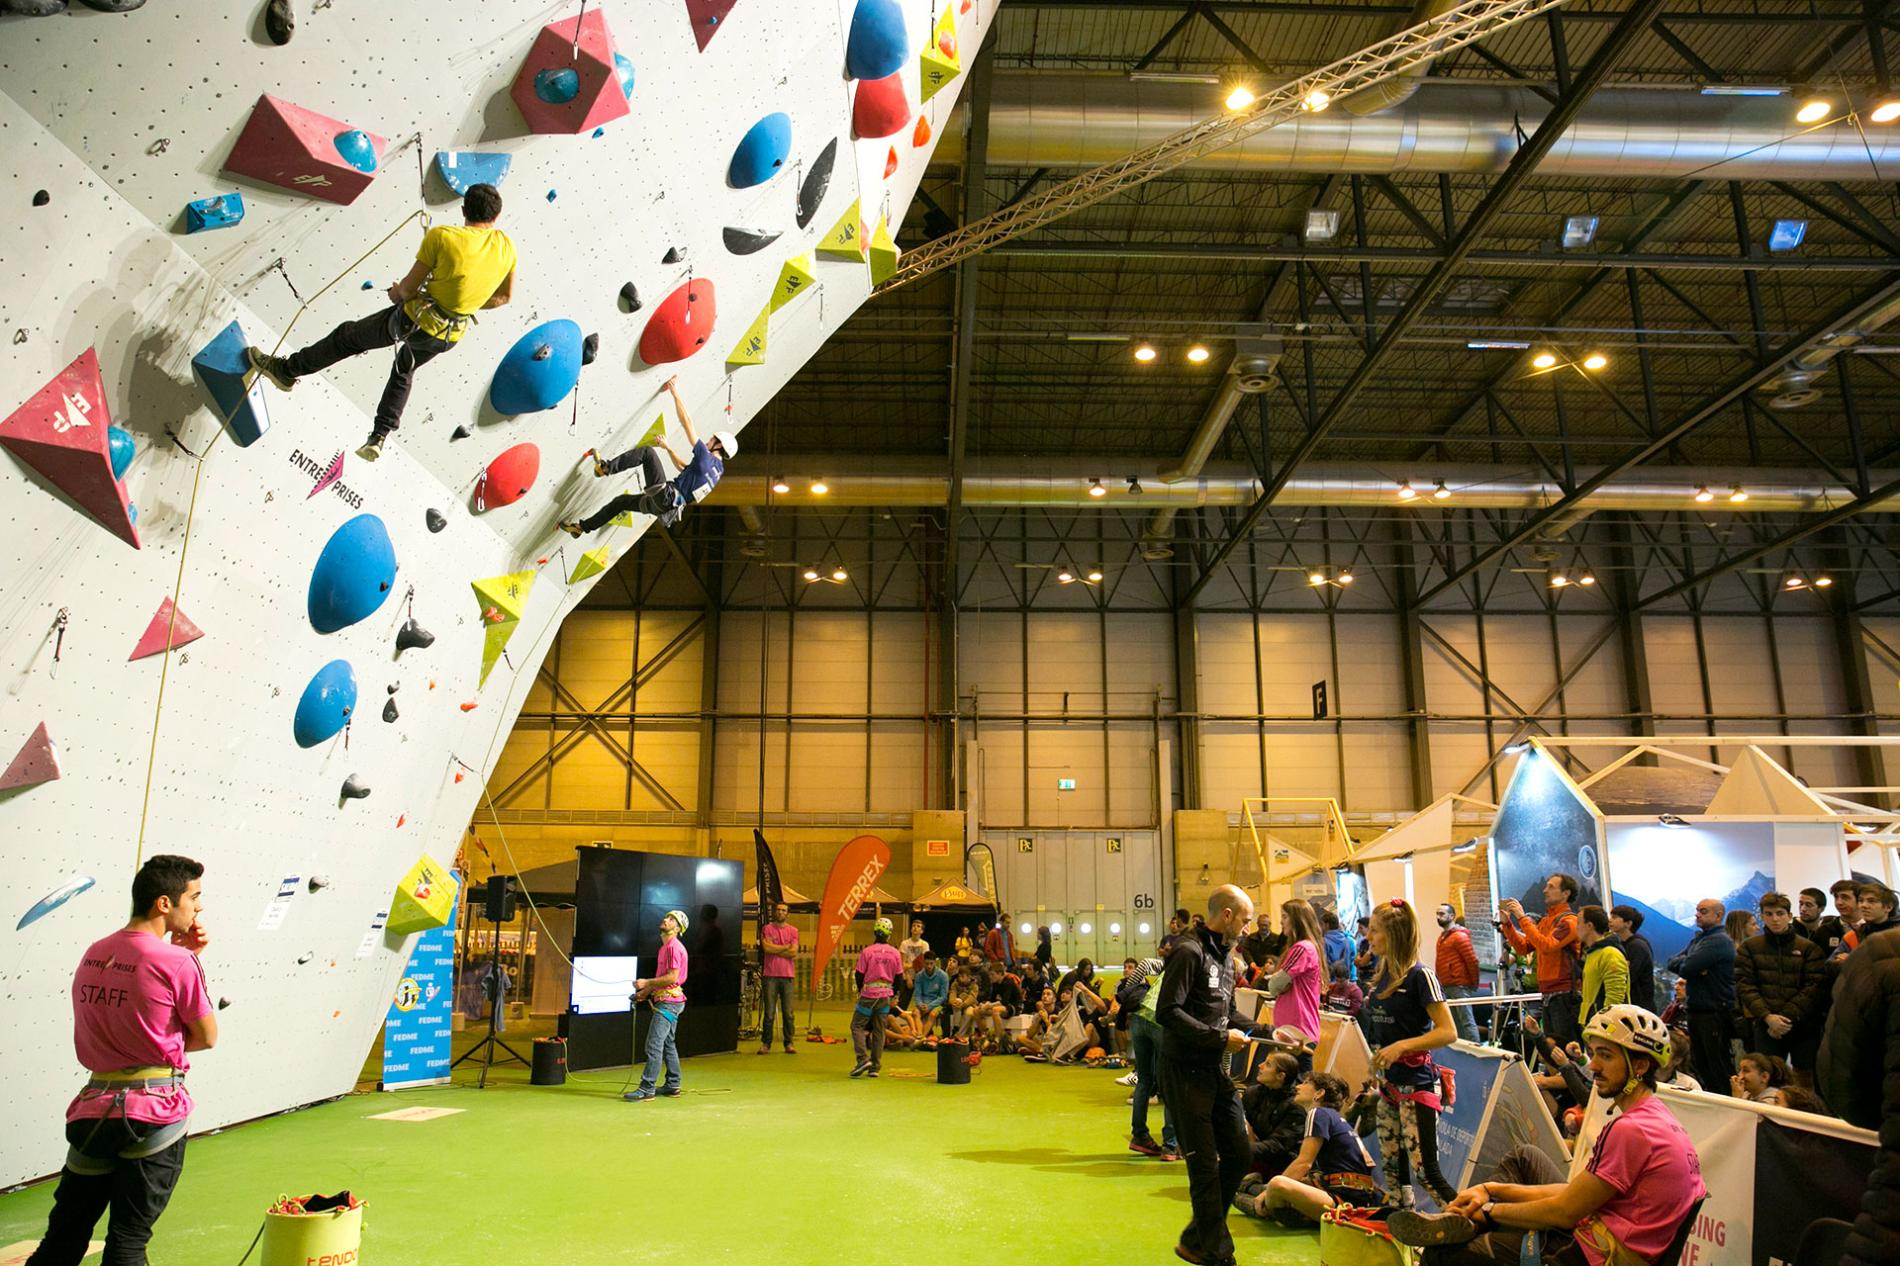 Climbing area in Expotural